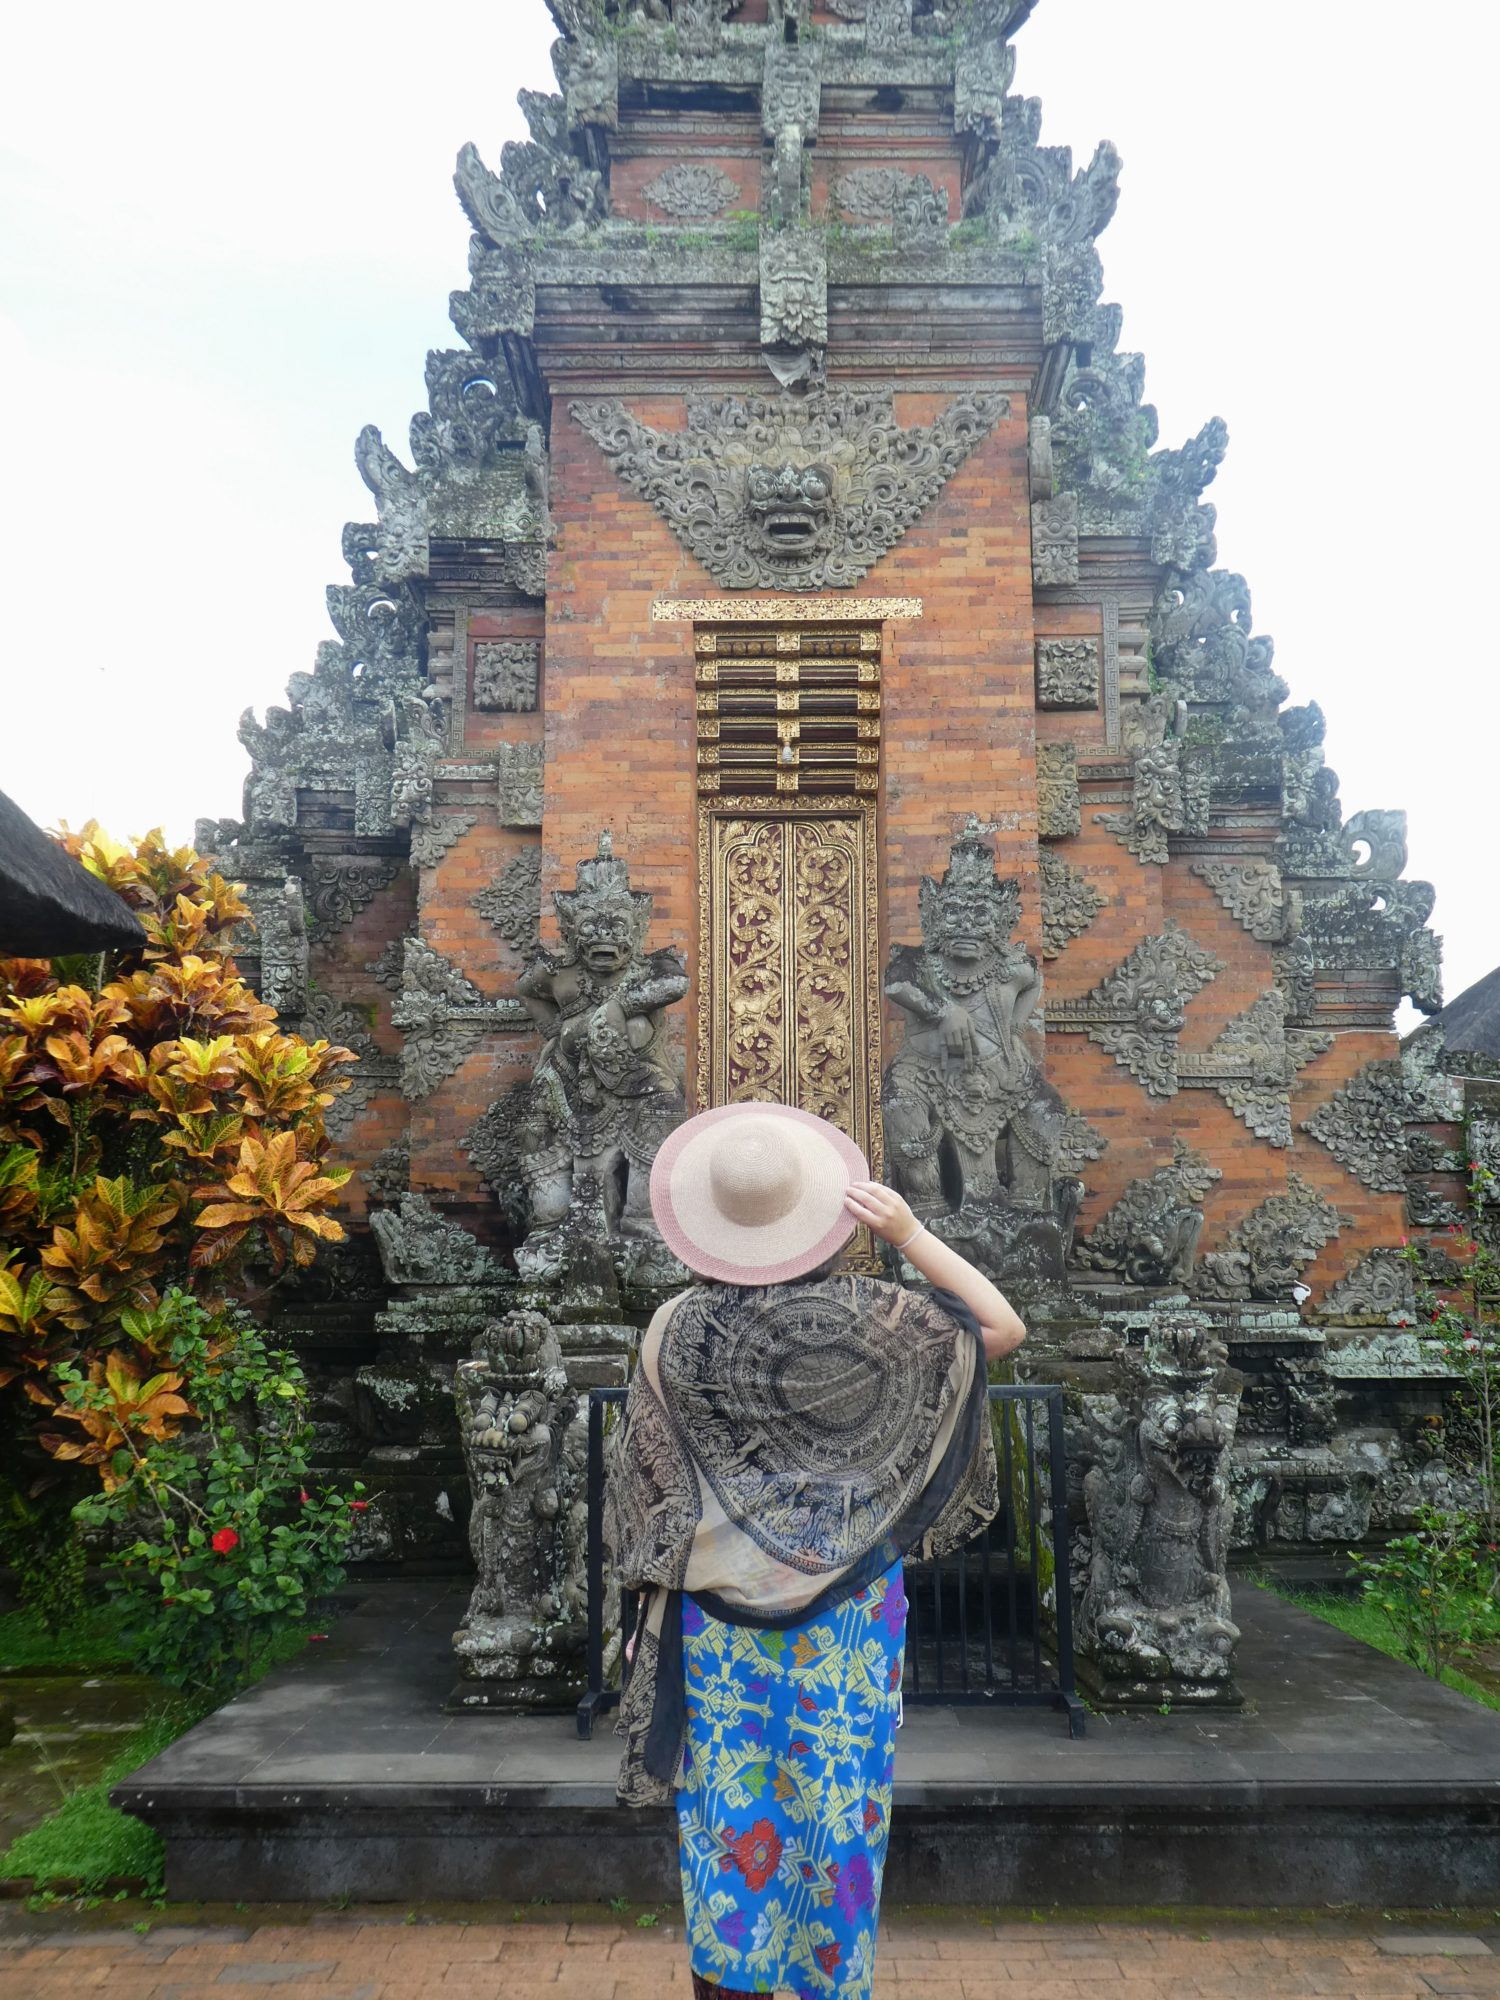 Temple | Photo Diary: Our Day in Bali | Gluten Free Horizons